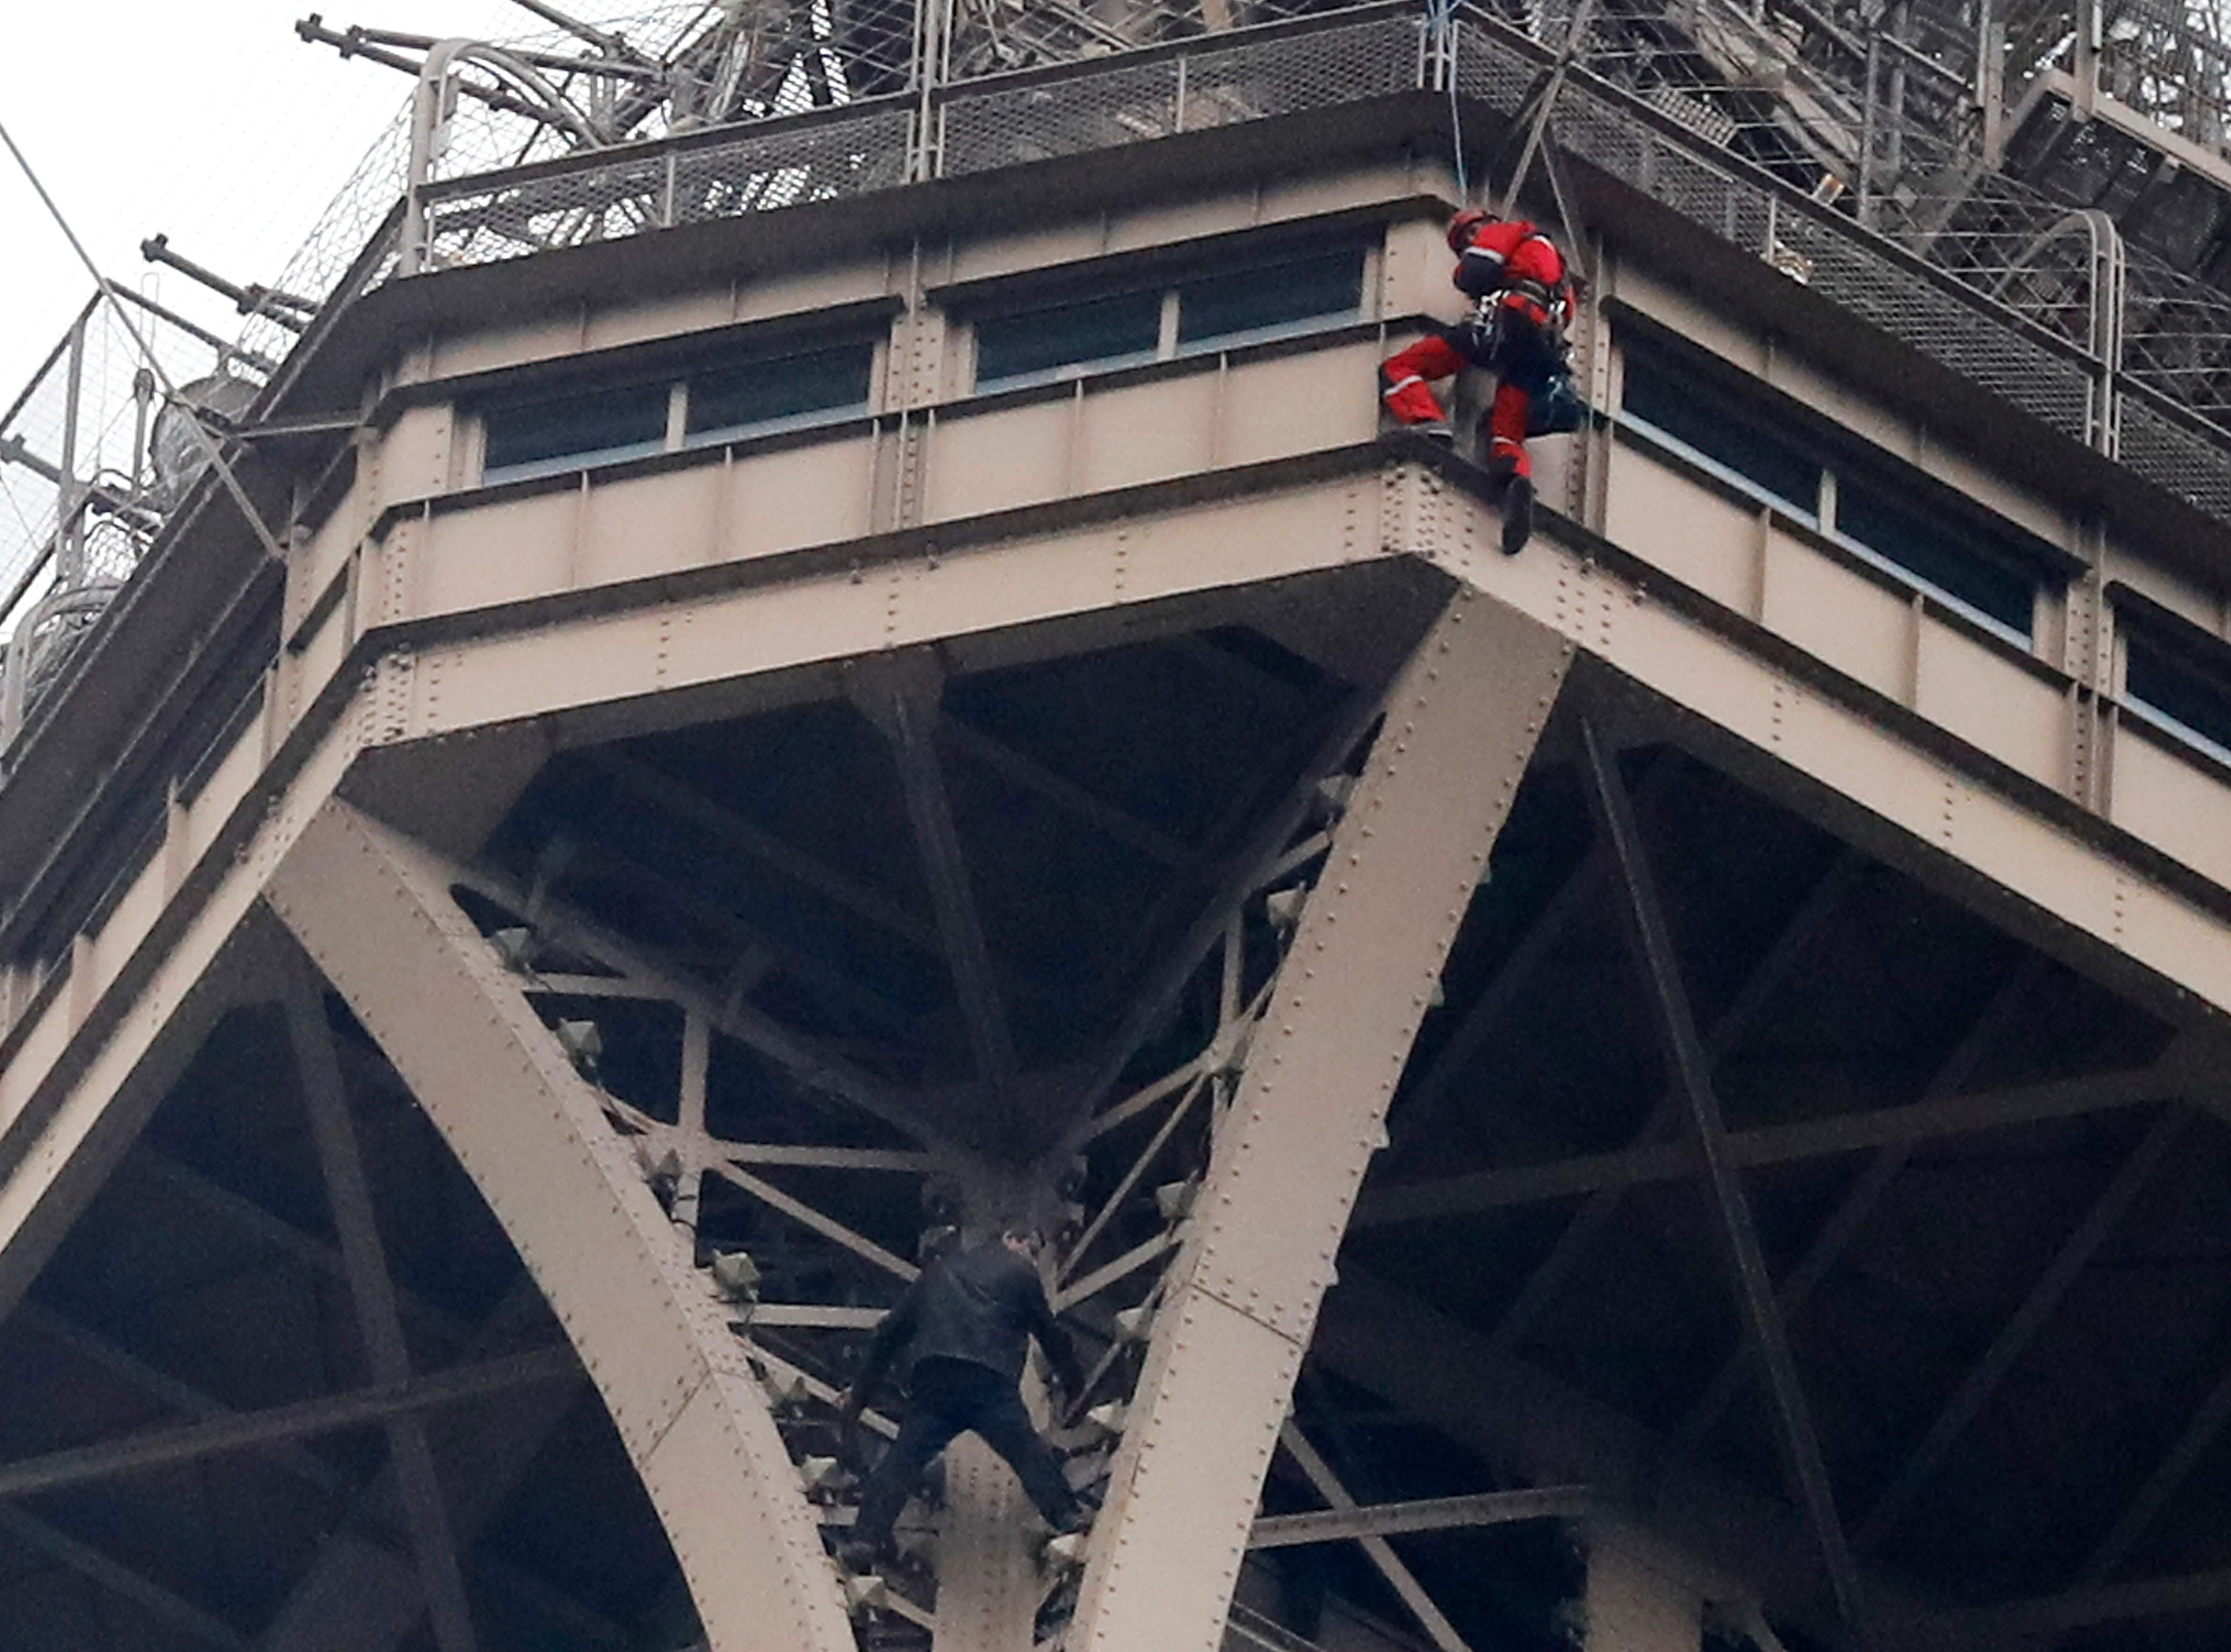 A rescue worker, top, in red, hangs from the Eiffel Tower above a climber standing between two iron columns Monday, May 20, 2019 in Paris. The monument was evacuated after the climber scaled nearly to the top of the tower before eventually surrendering.